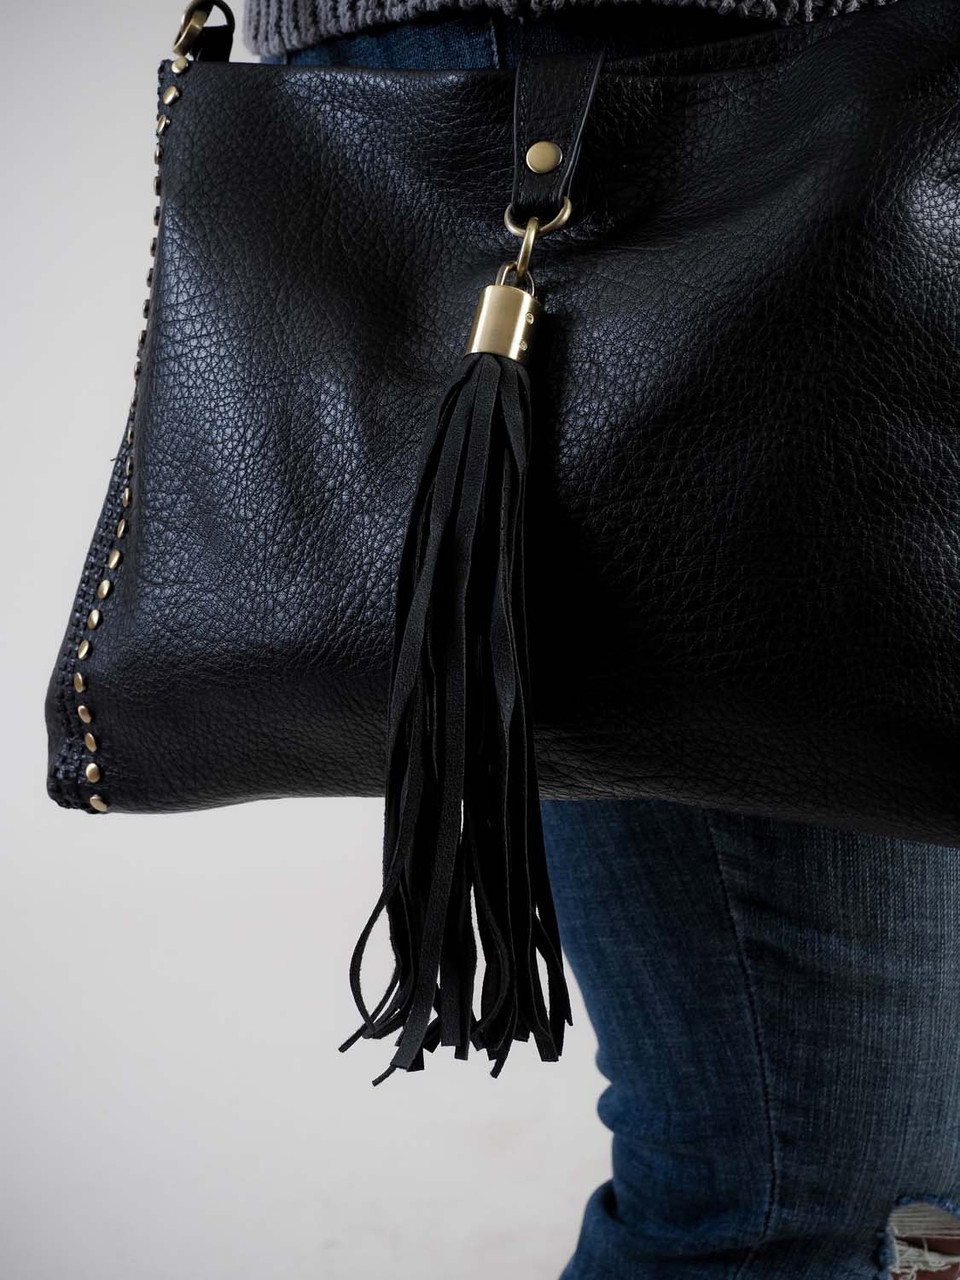 black crossbody bag with tassel